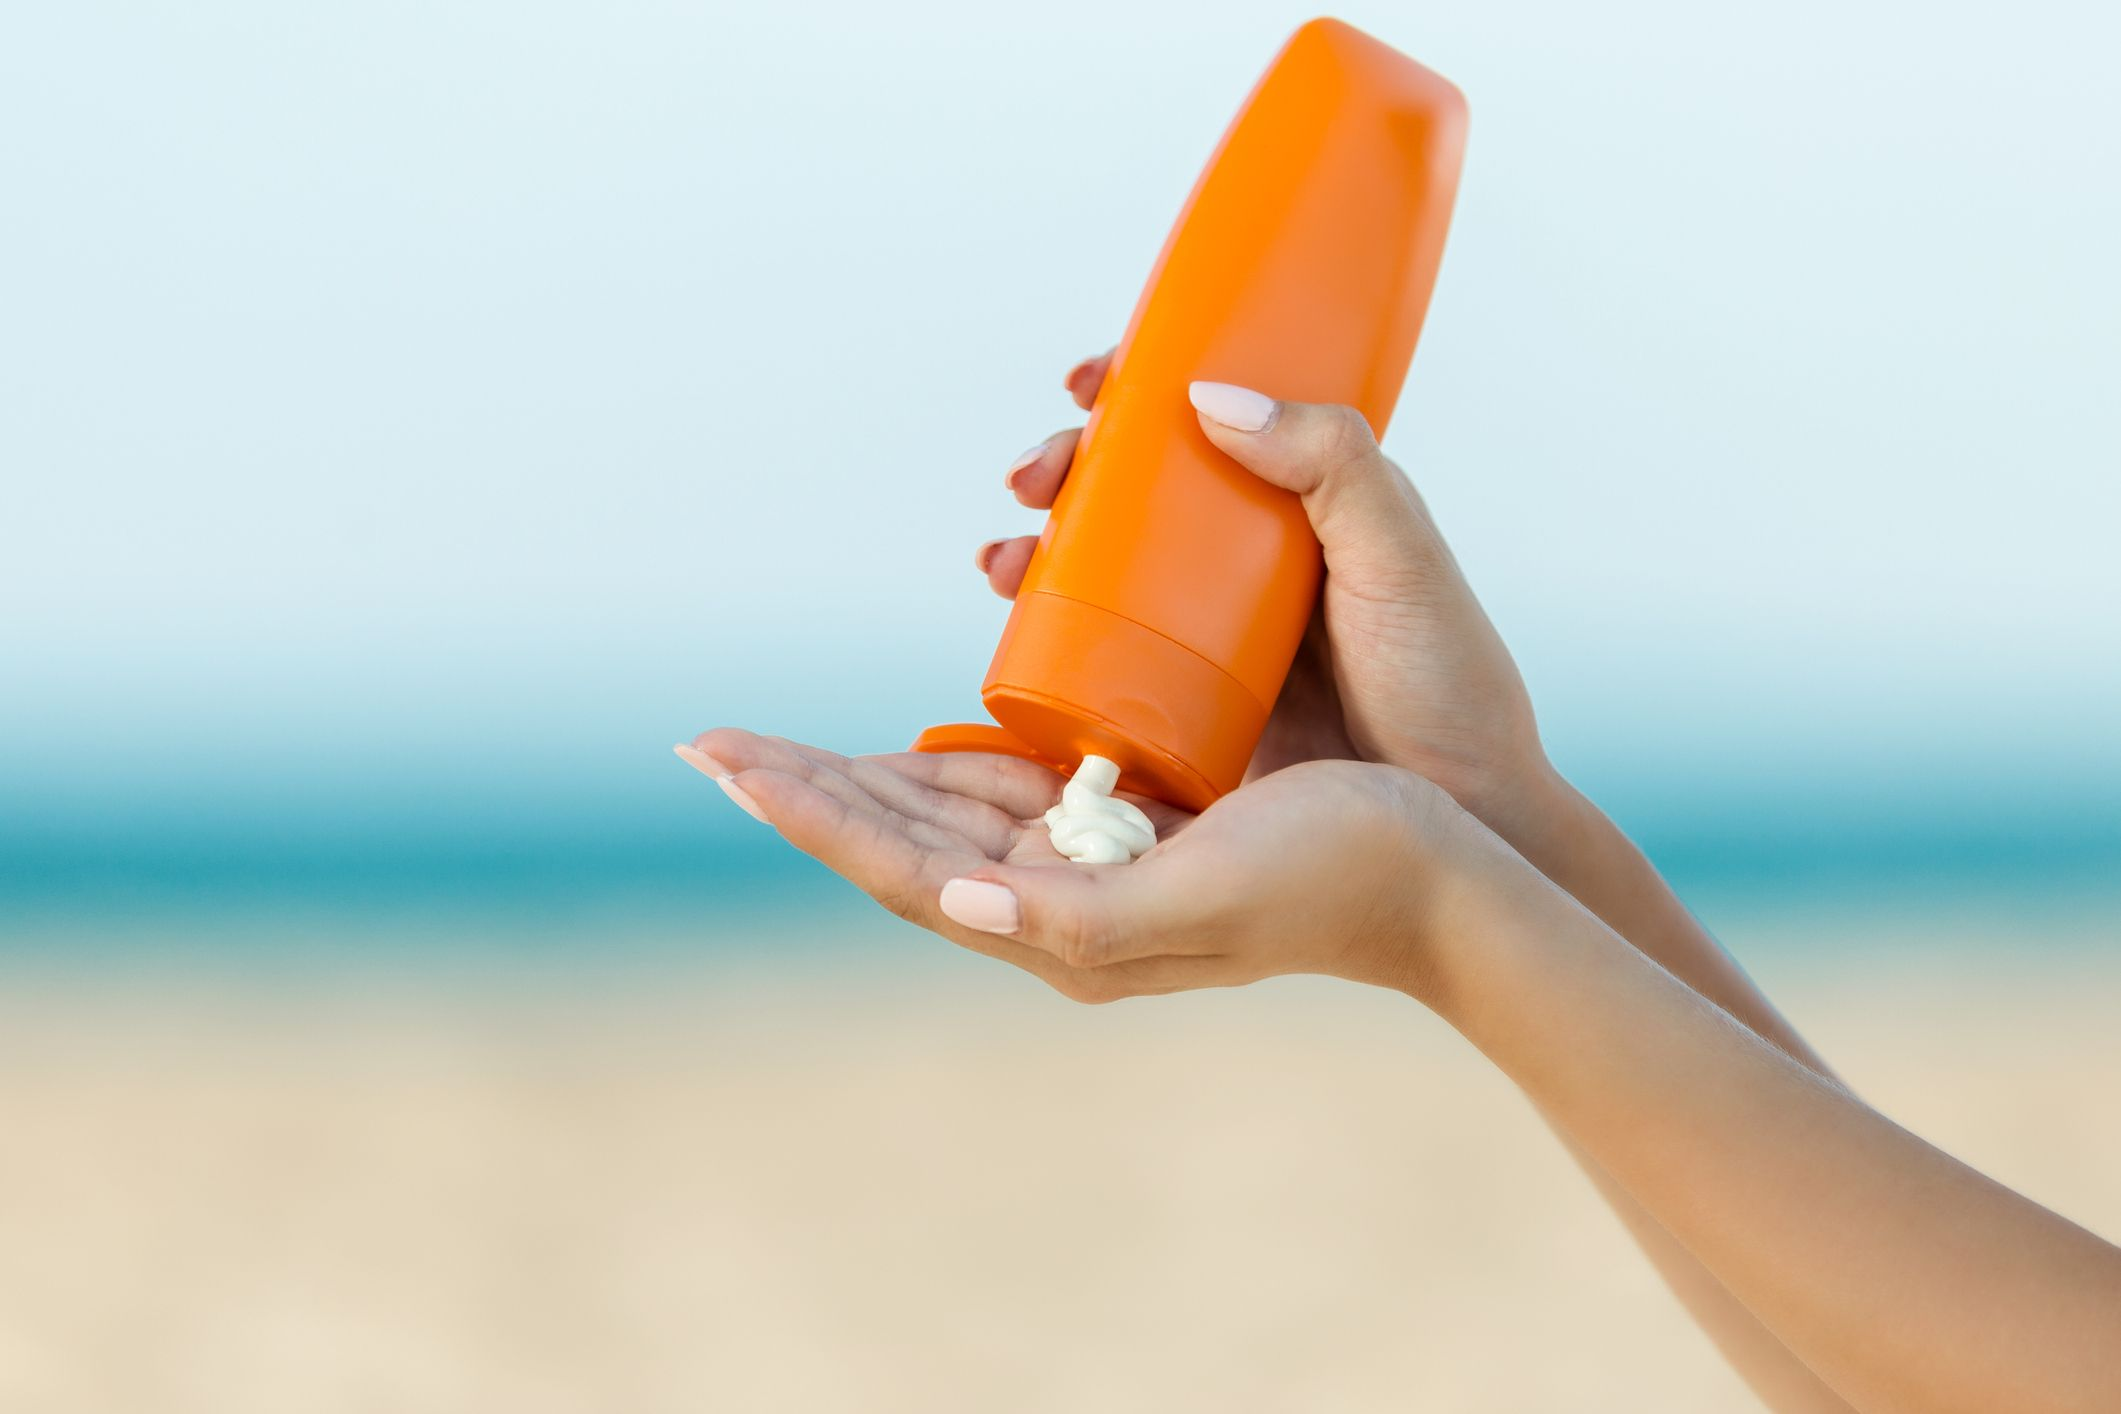 Multiple Sunscreen Chemicals Enter Your Blood After One Use, Study Finds